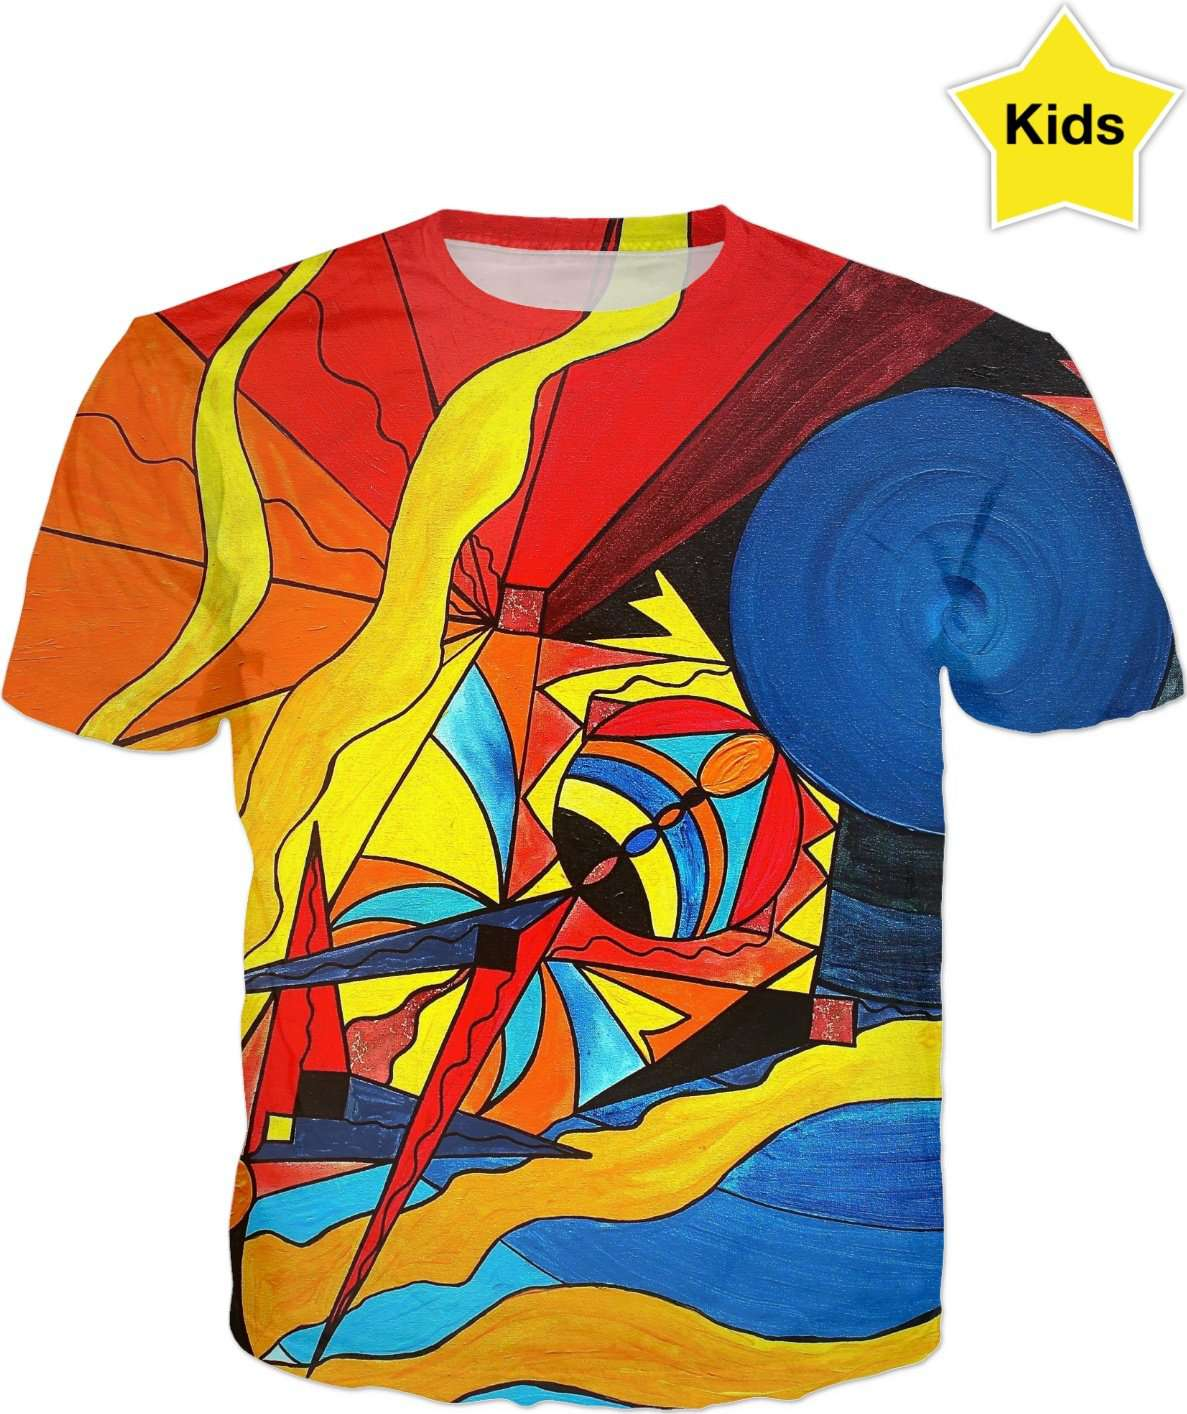 Exploration - Kids T-Shirt